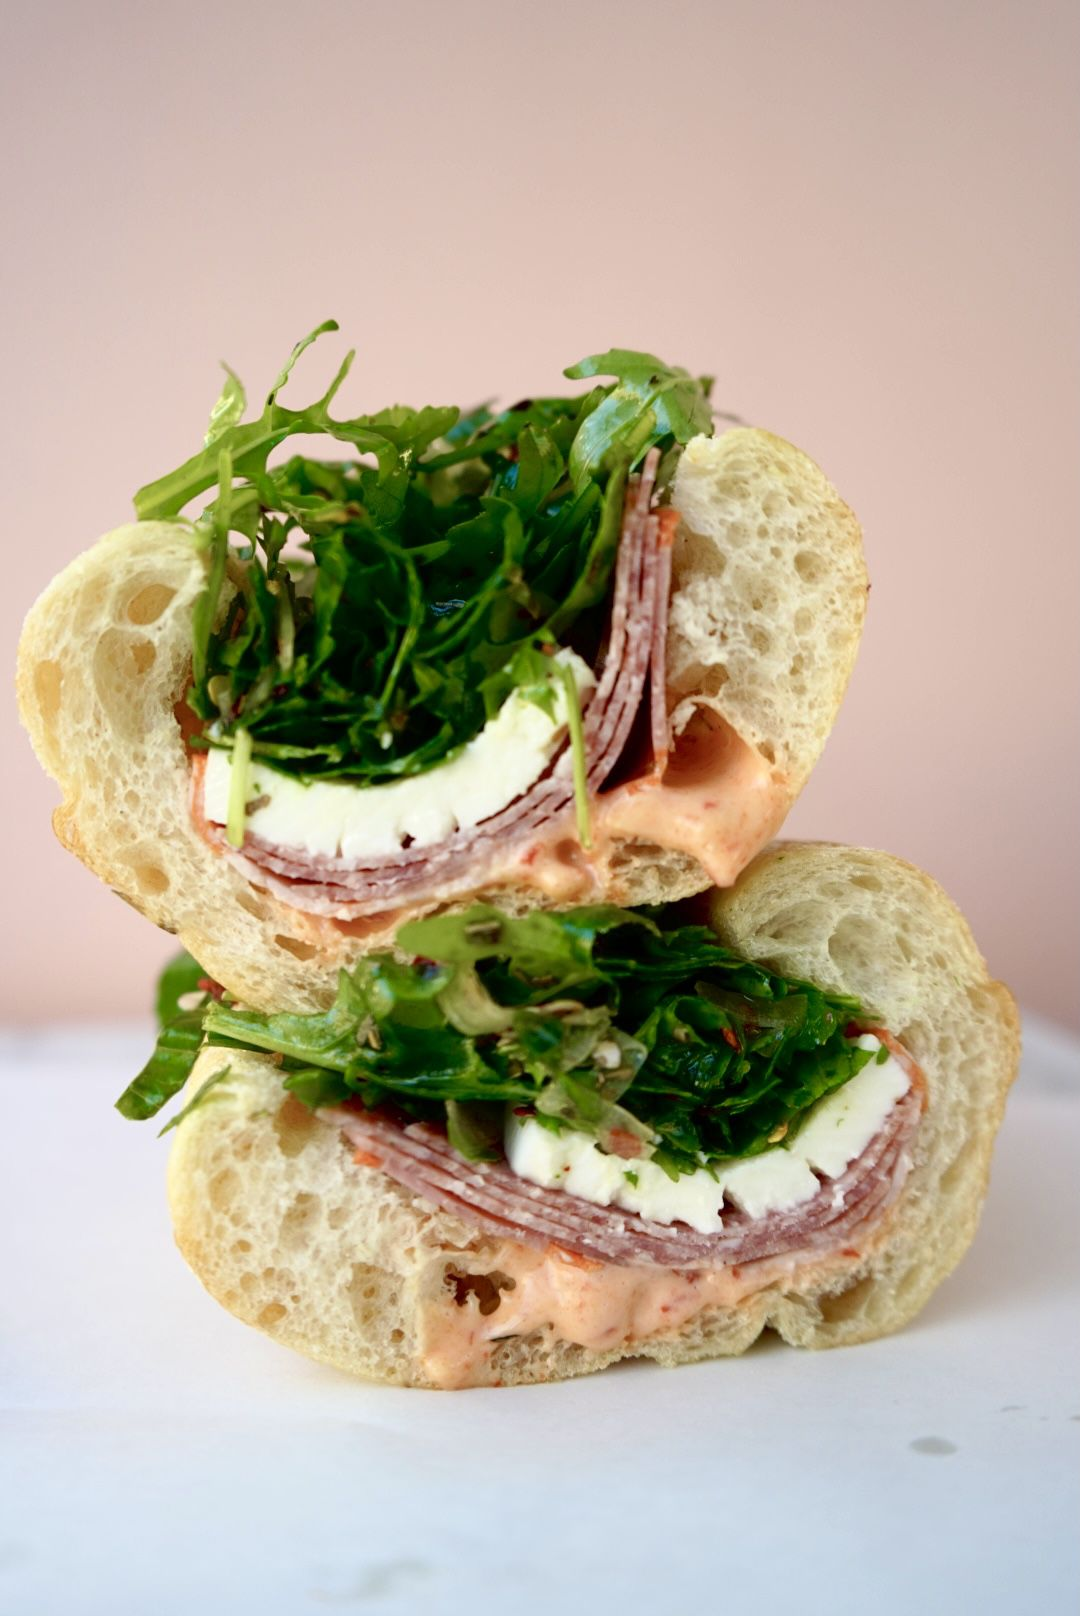 Marisa Tomei Eats Free has capicola, Genoa, salami, fresh mozzarella, basil and arugula salad, and honey chili aioli